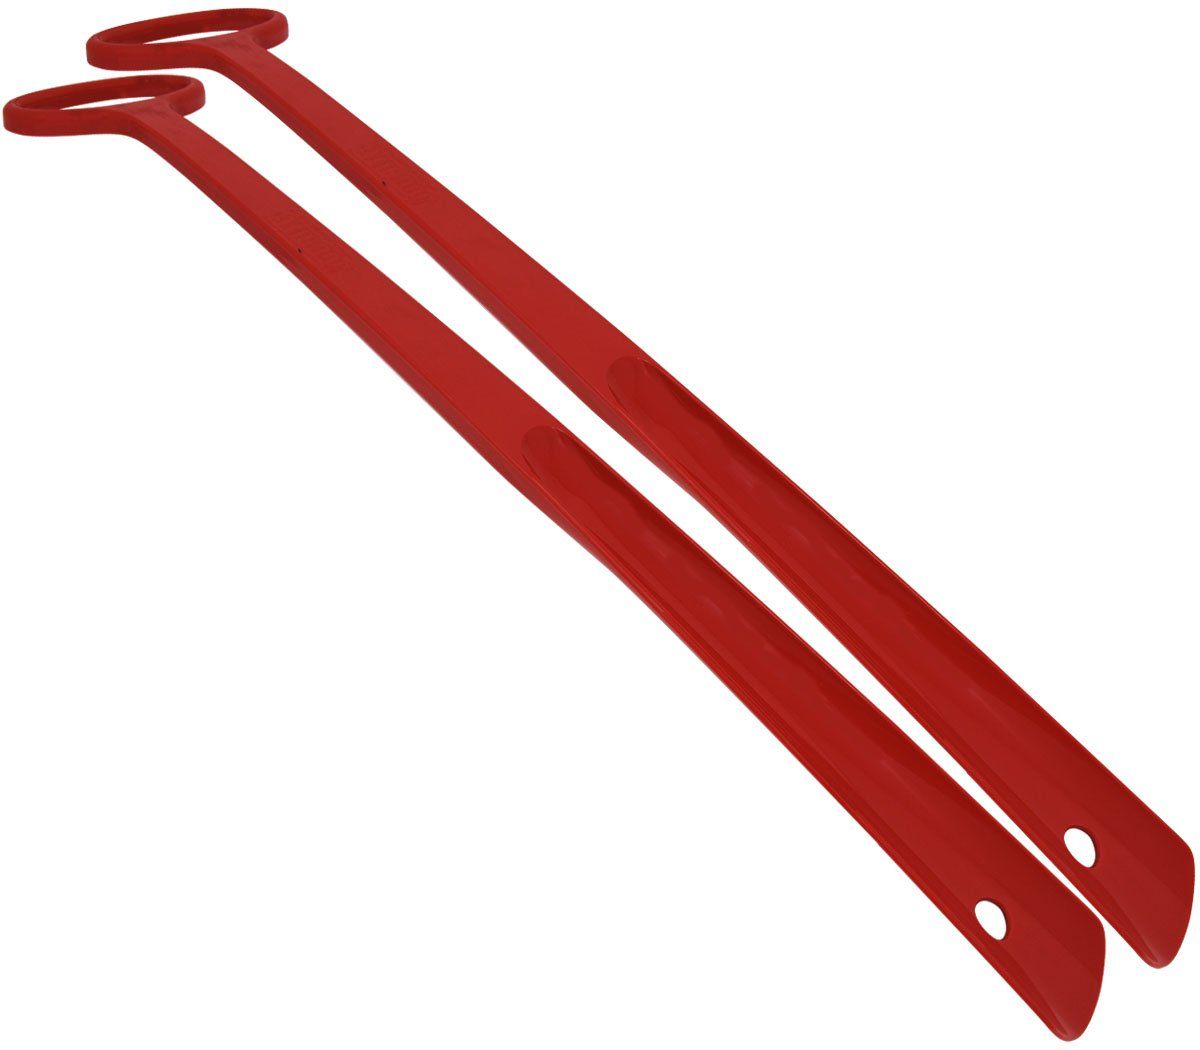 FootMatters 24 Inch Extra Long Handle Durable Easy-grip Shoe Horn - Multiple Color Options - No More Bending Over to Put Shoes on Great for Elderly, Disabled, and Folks with Back Pain - Red - 2 Pack